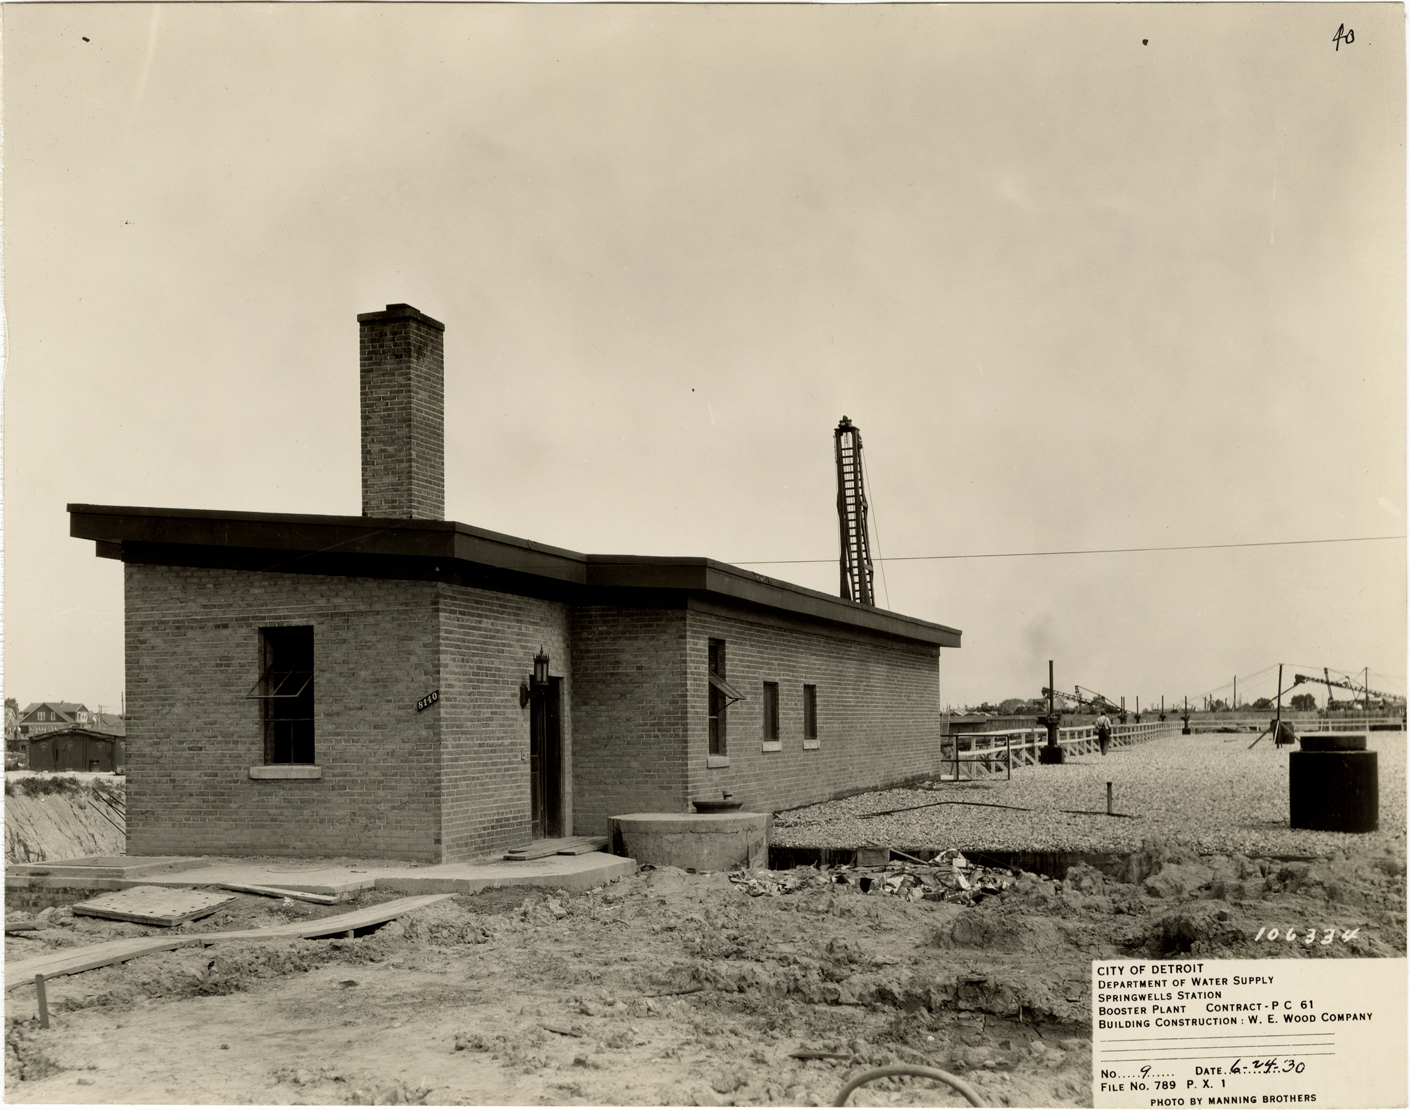 Booster plant during construction, Springwells Station